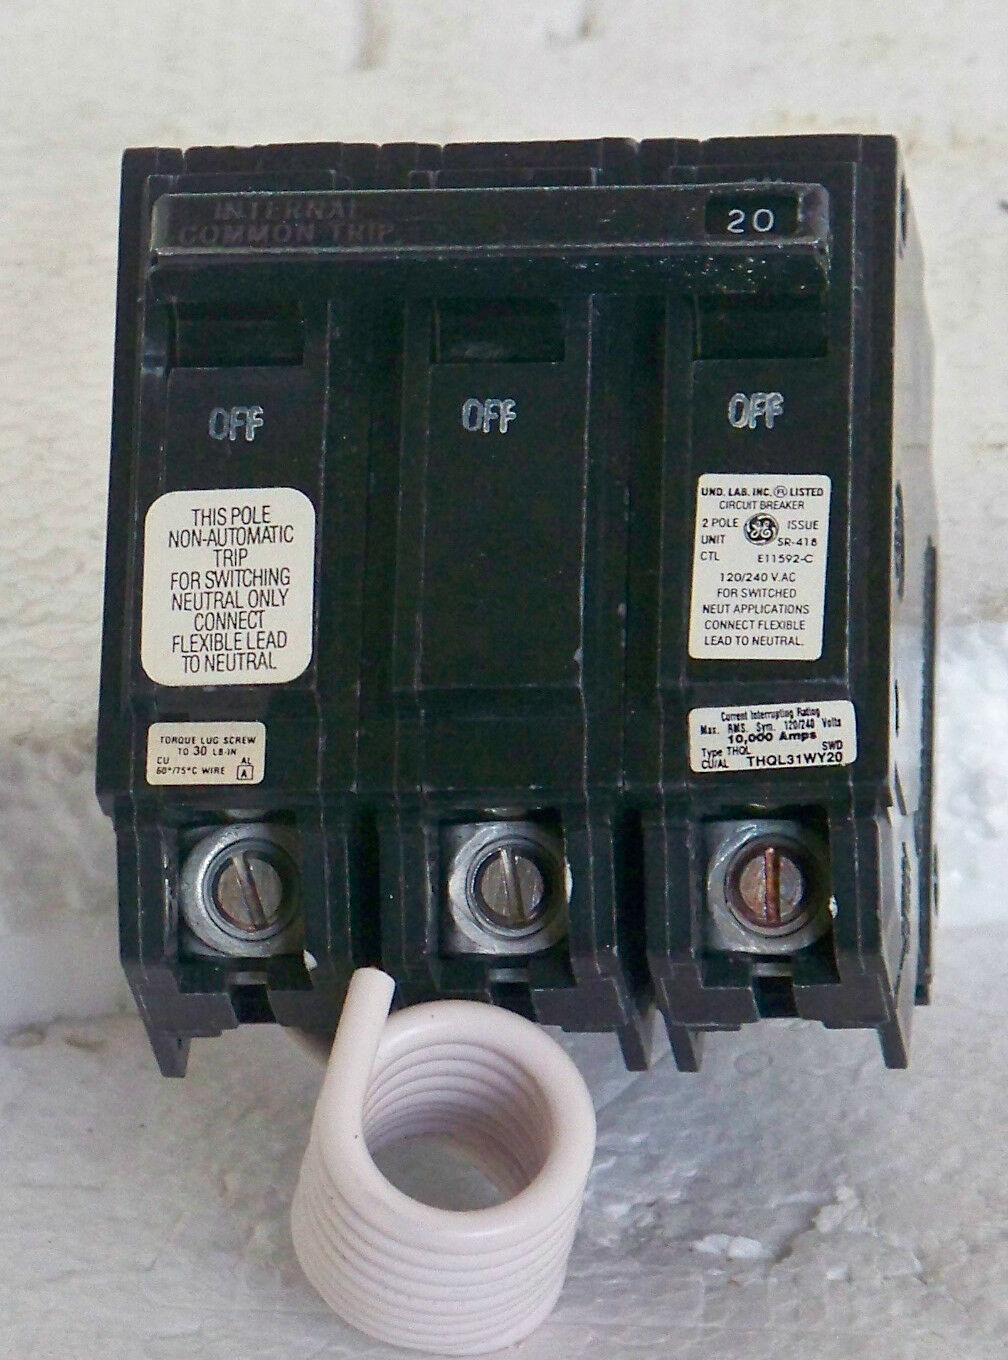 Thql31wy20 Ge 2 Pole 20 Amp 240 Volt Switched Neutral Ebay The Circuit Breaker Is A Switch Designed To Automatically Shut Off